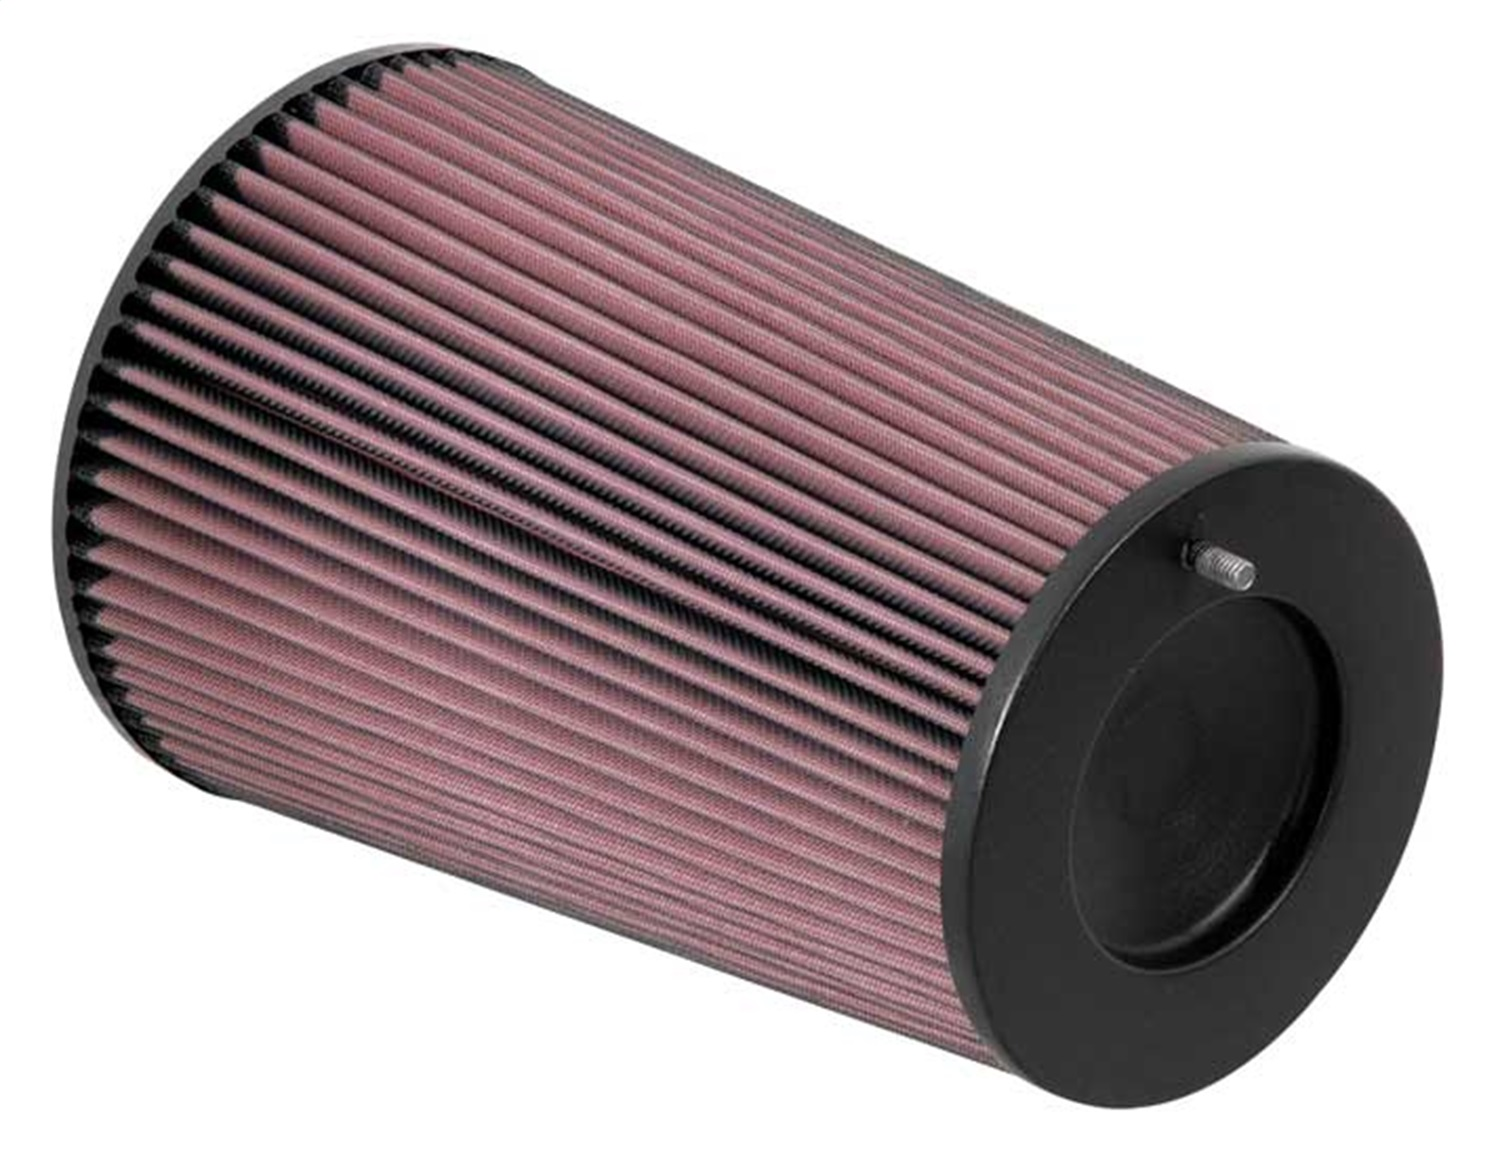 K/&N Filters R-1100 Universal Air Cleaner Assembly Fits 73-82 ATC110 ATC90